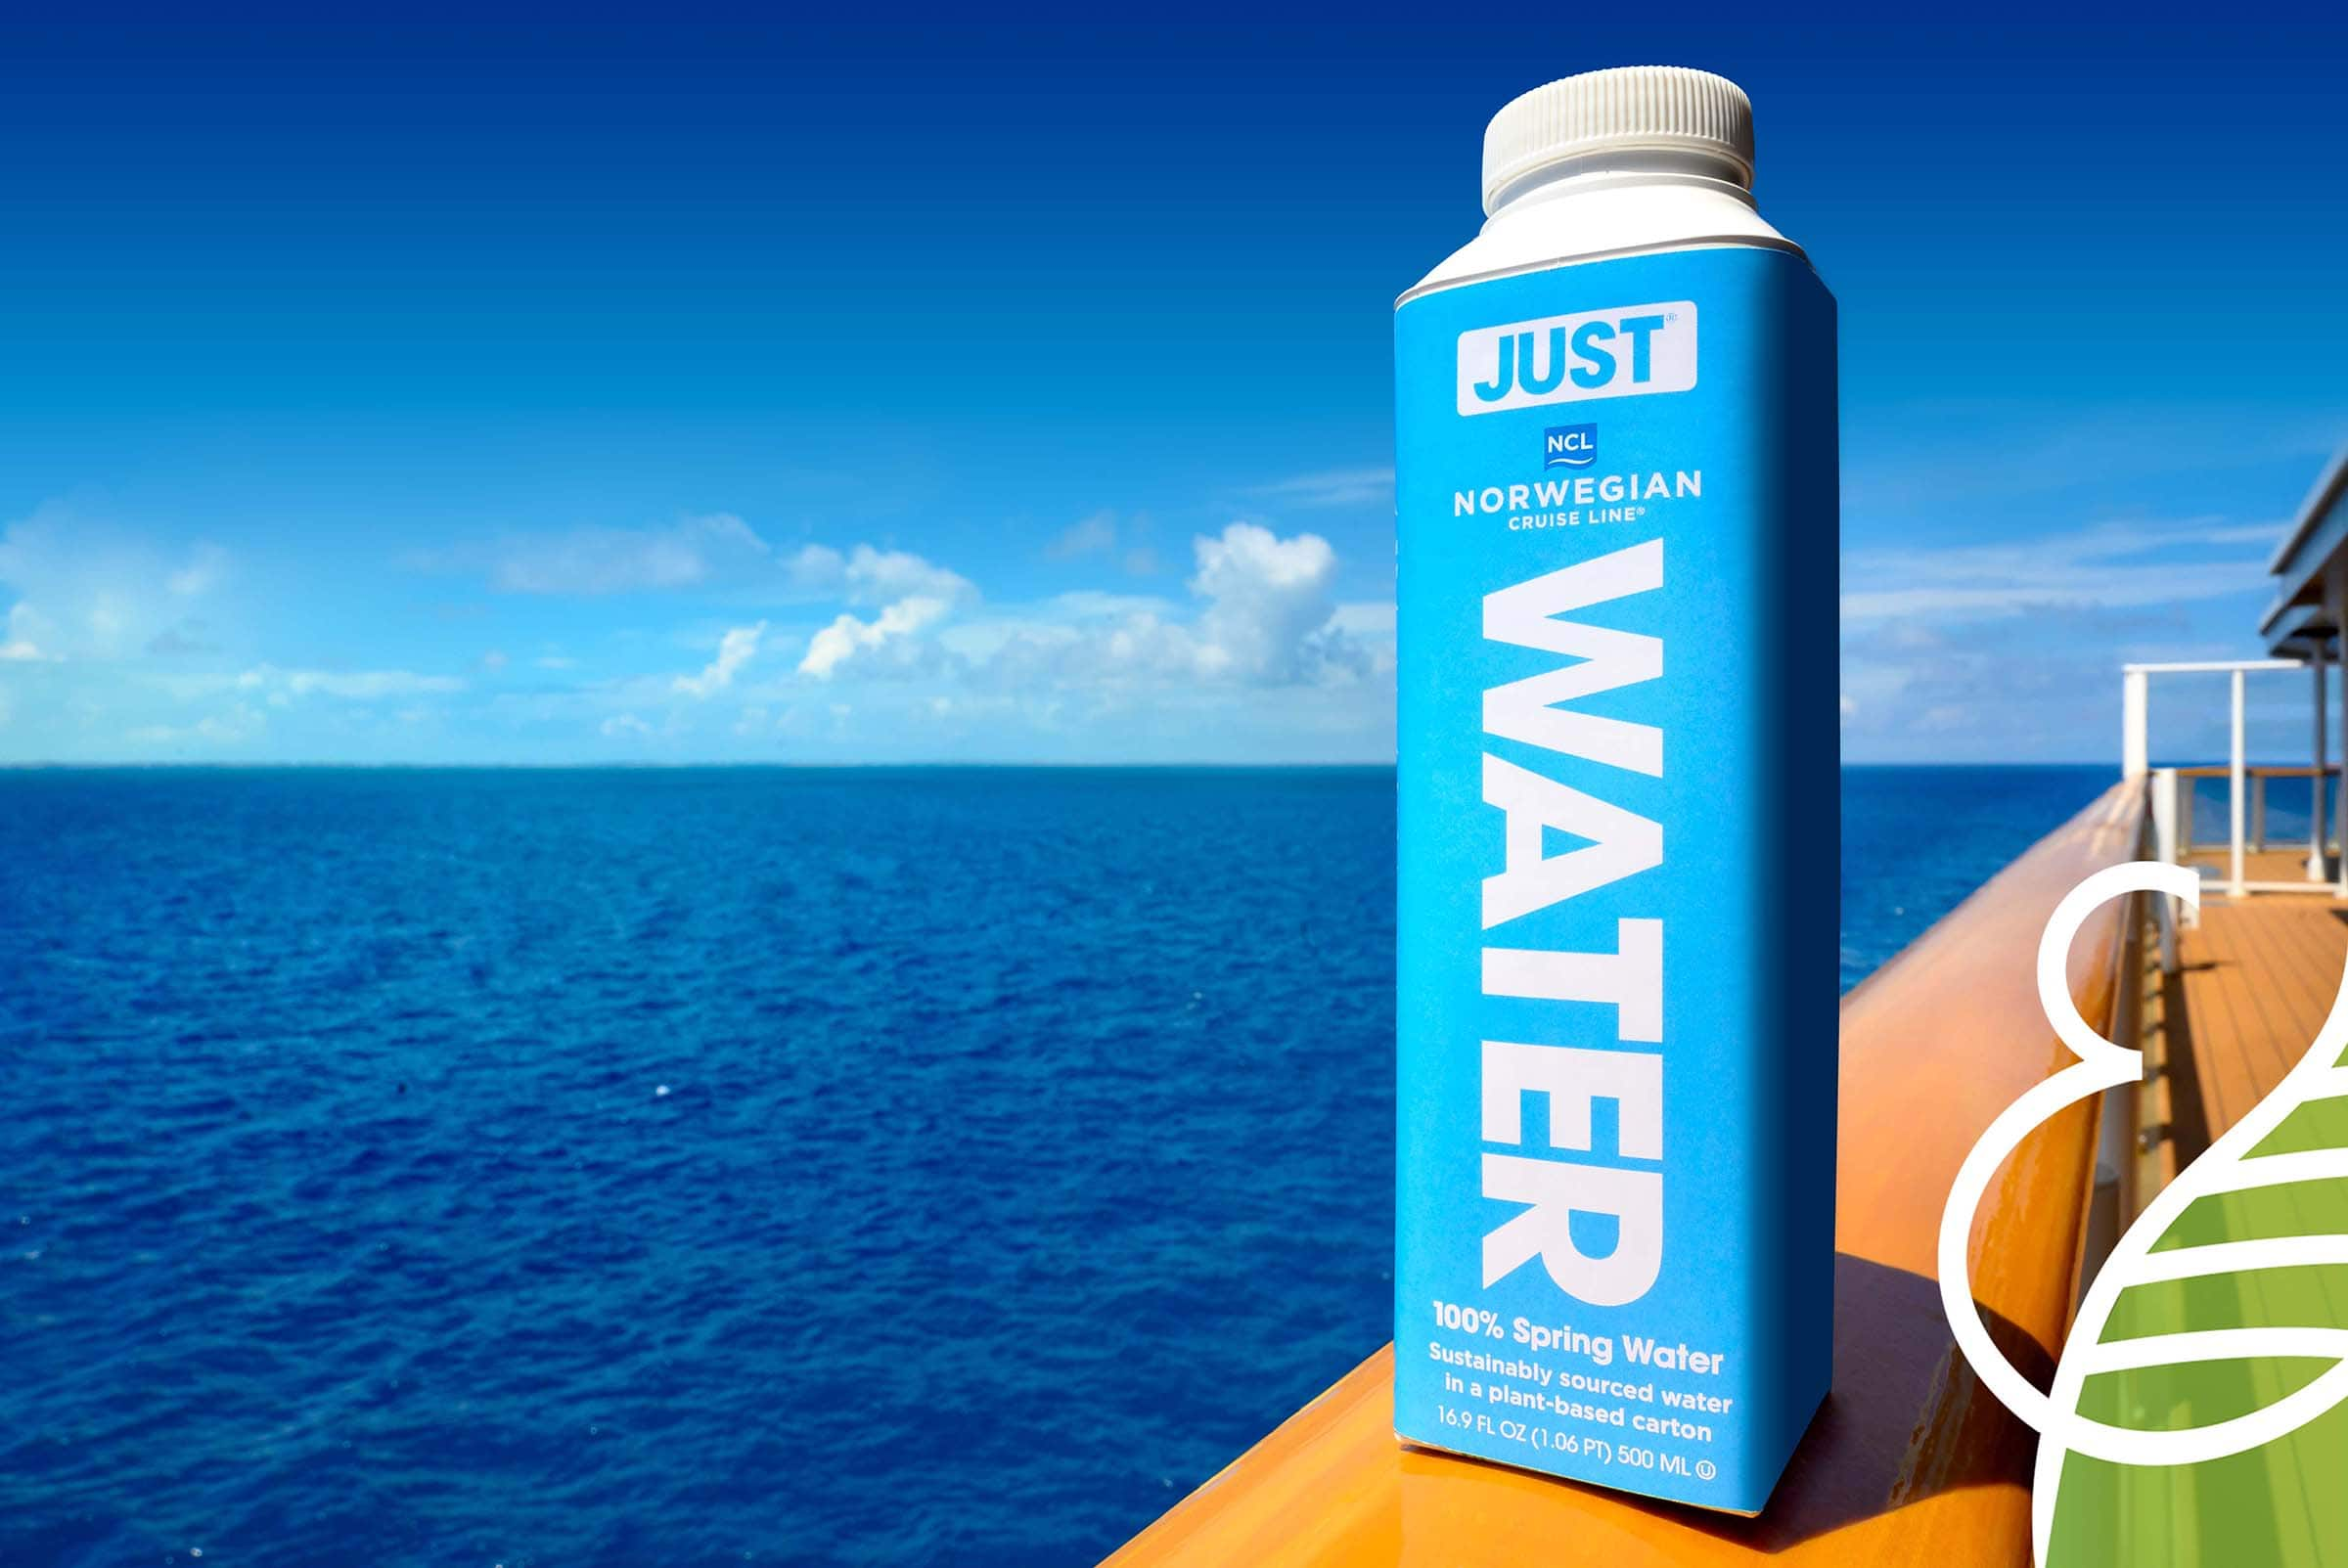 Norwegian Cruise Line México has replaced all single-use plastic beverage bottles acros